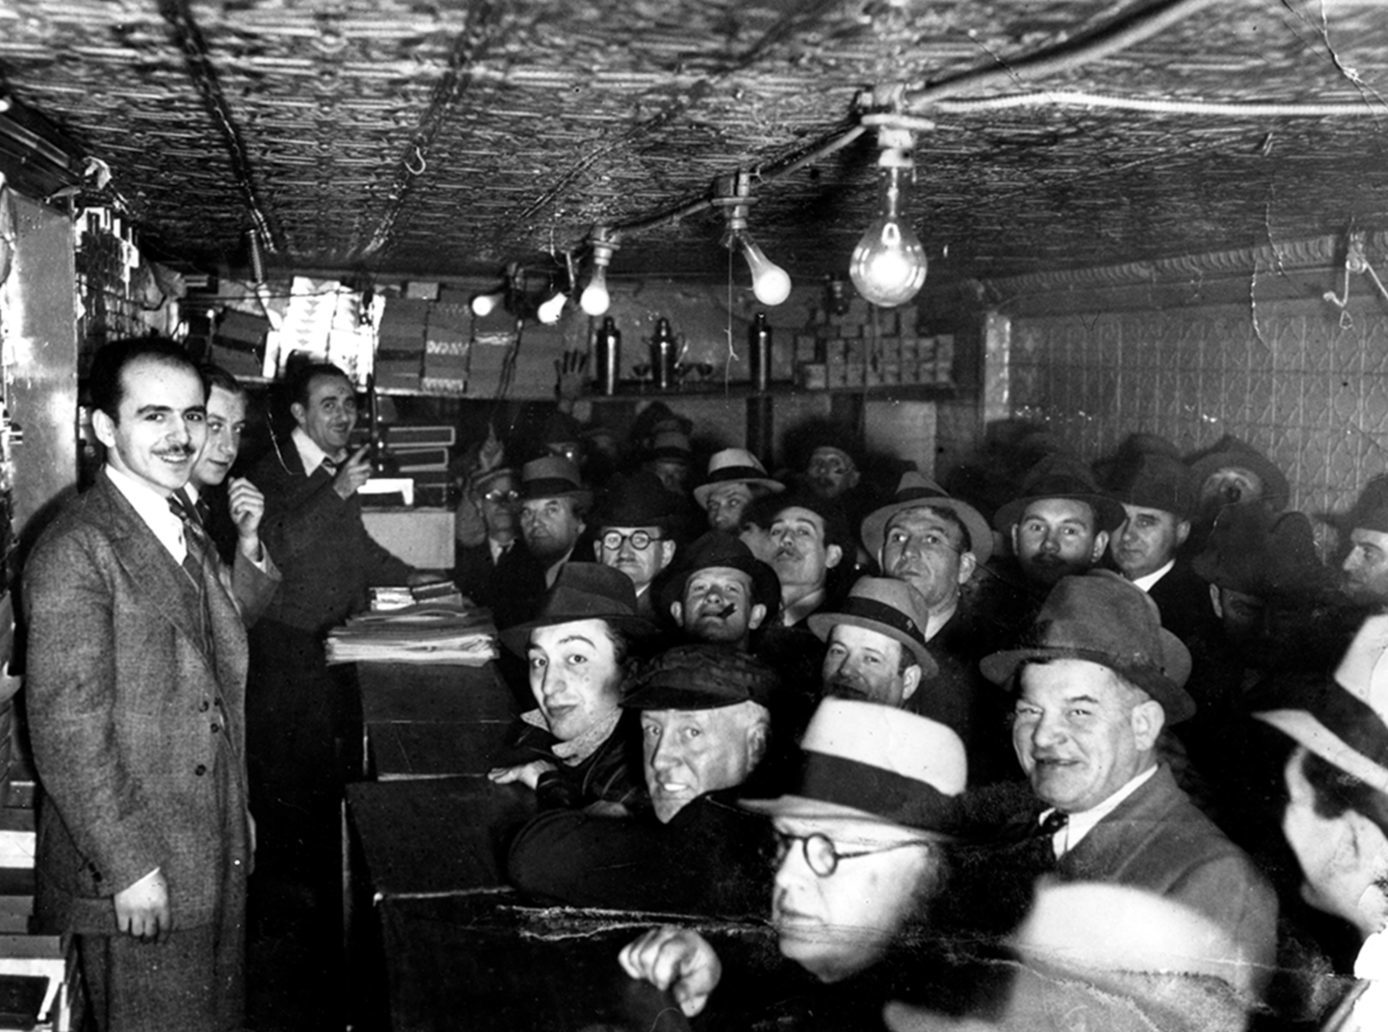 Black and white photo of Max Marcus' auction house. The space is small and crowded with adults sitting together and rows of lights hanging low above